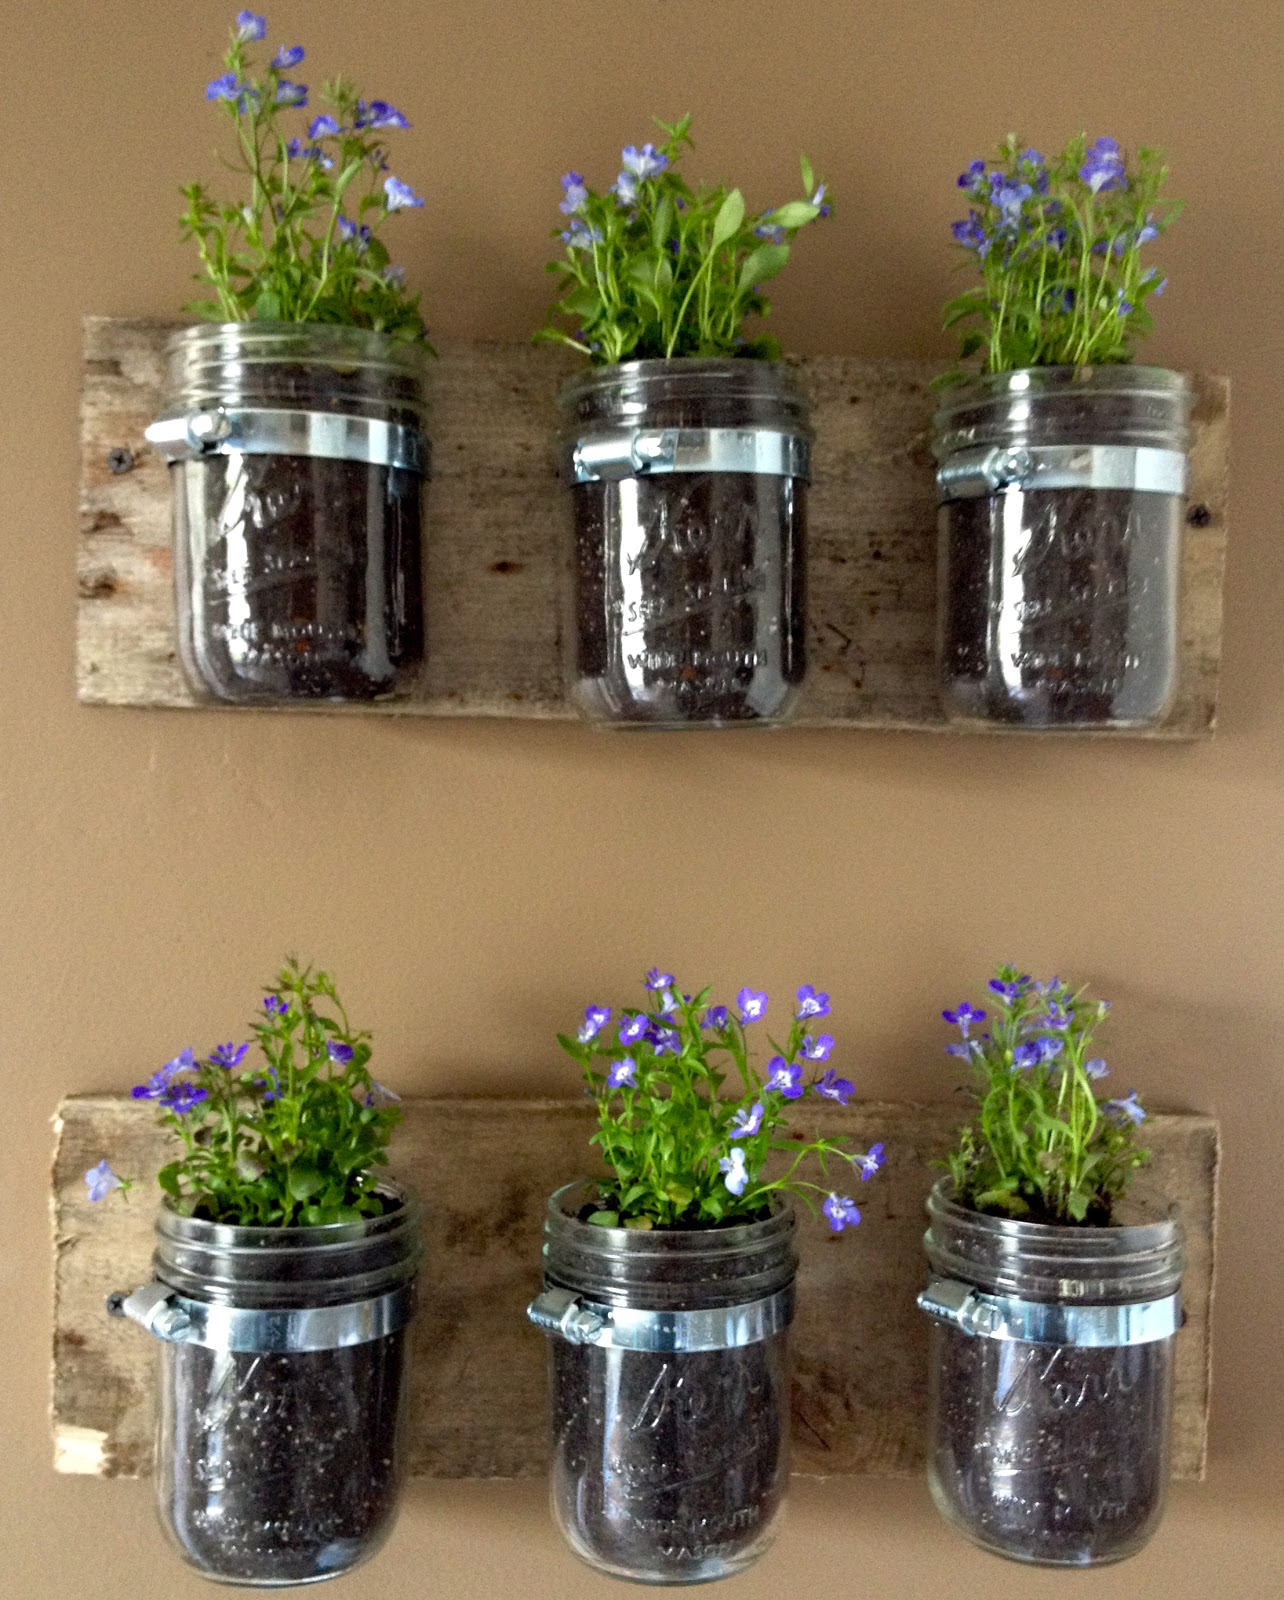 Diy Hanging Wall Planters From Mason Jars Kasey Trenum